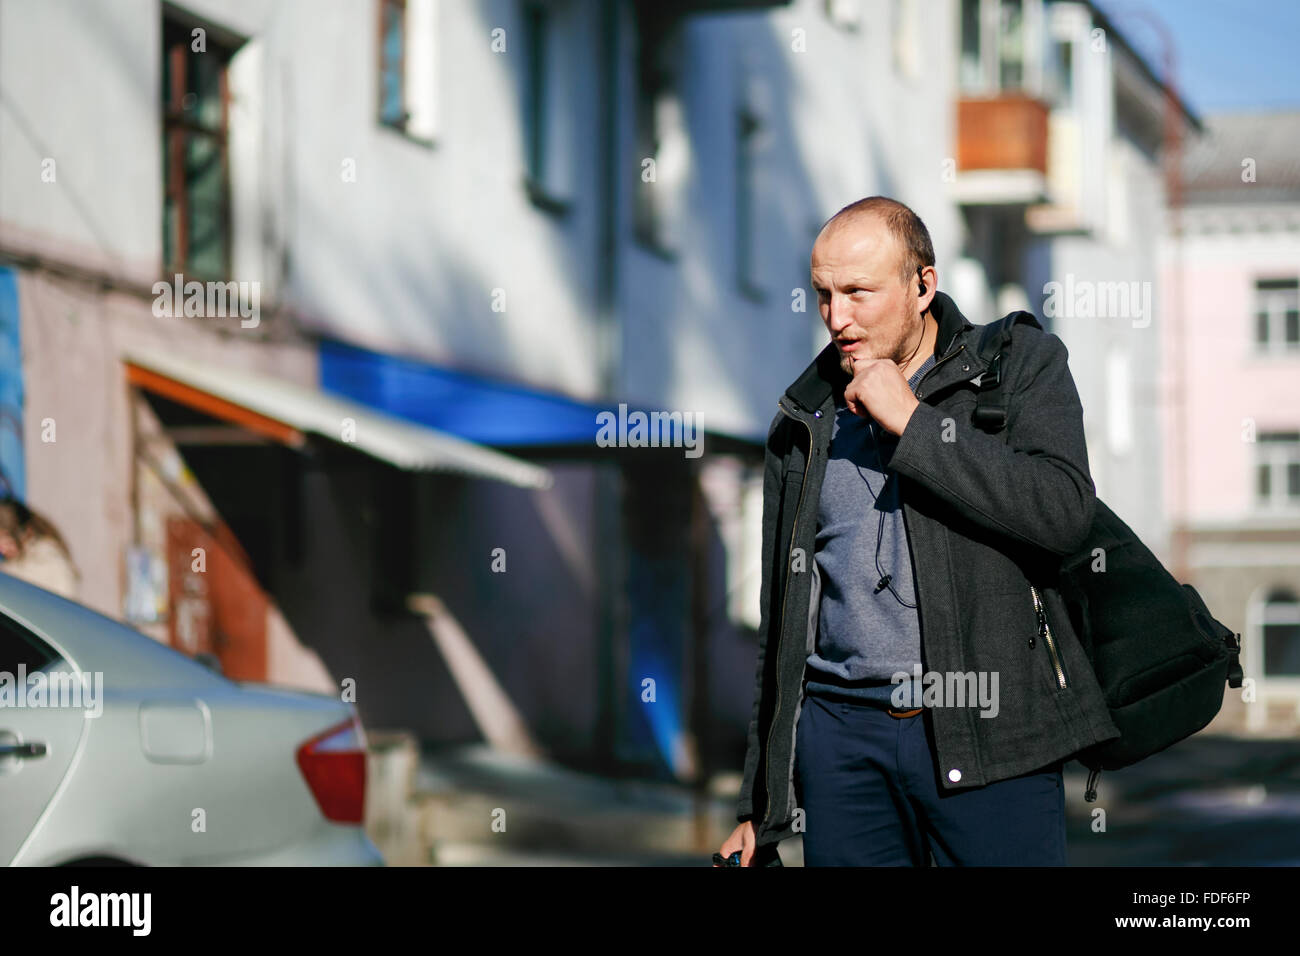 Brutal street photographer with camera in hand strolling city streets, talking on a walkie-talkie handsfree. - Stock Image